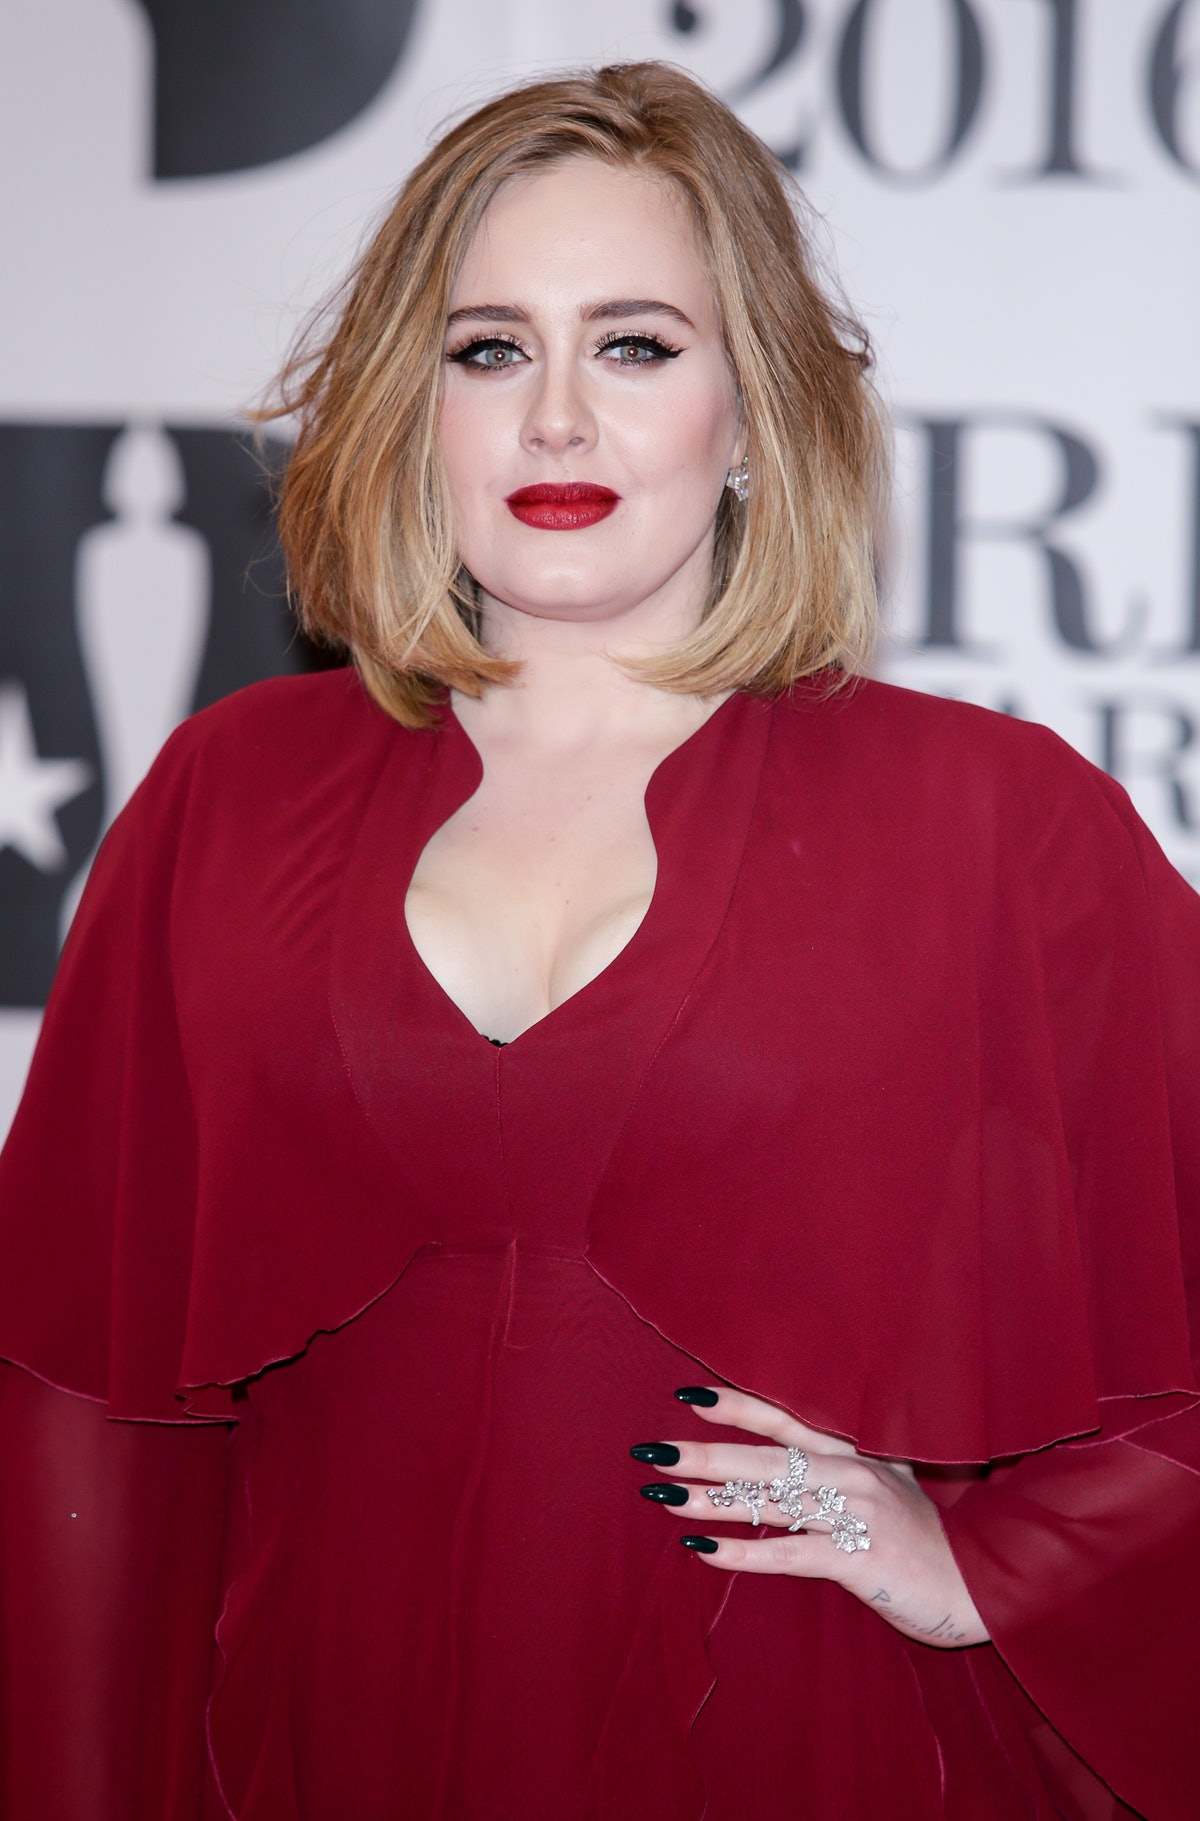 Adele's relationship history is telling.